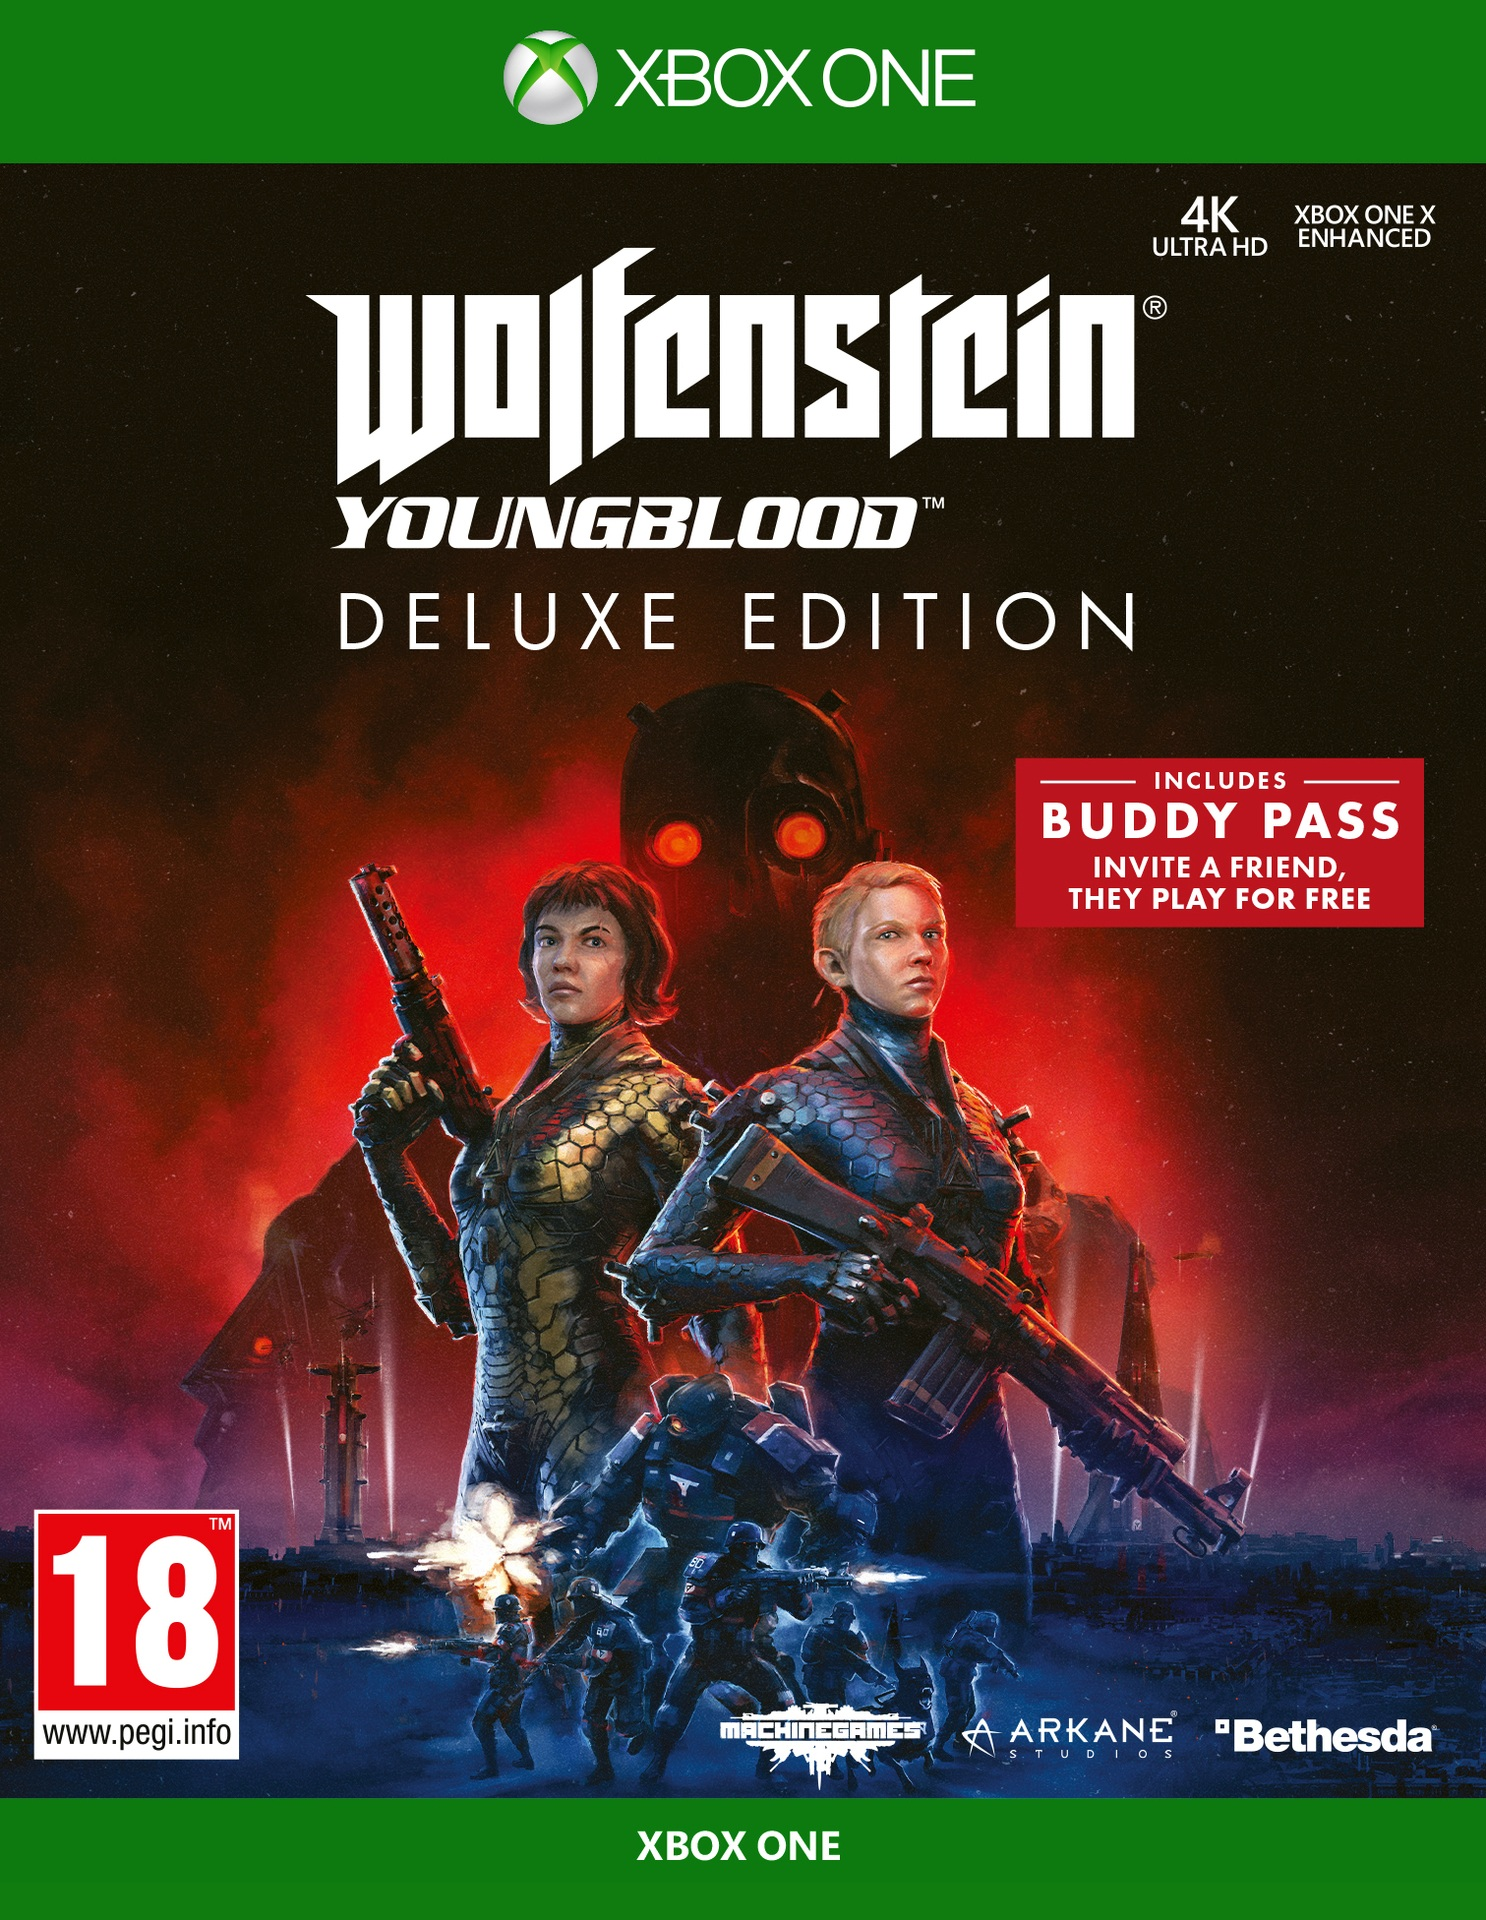 Wolfenstein: Youngblood - Deluxe Edition (XONE)